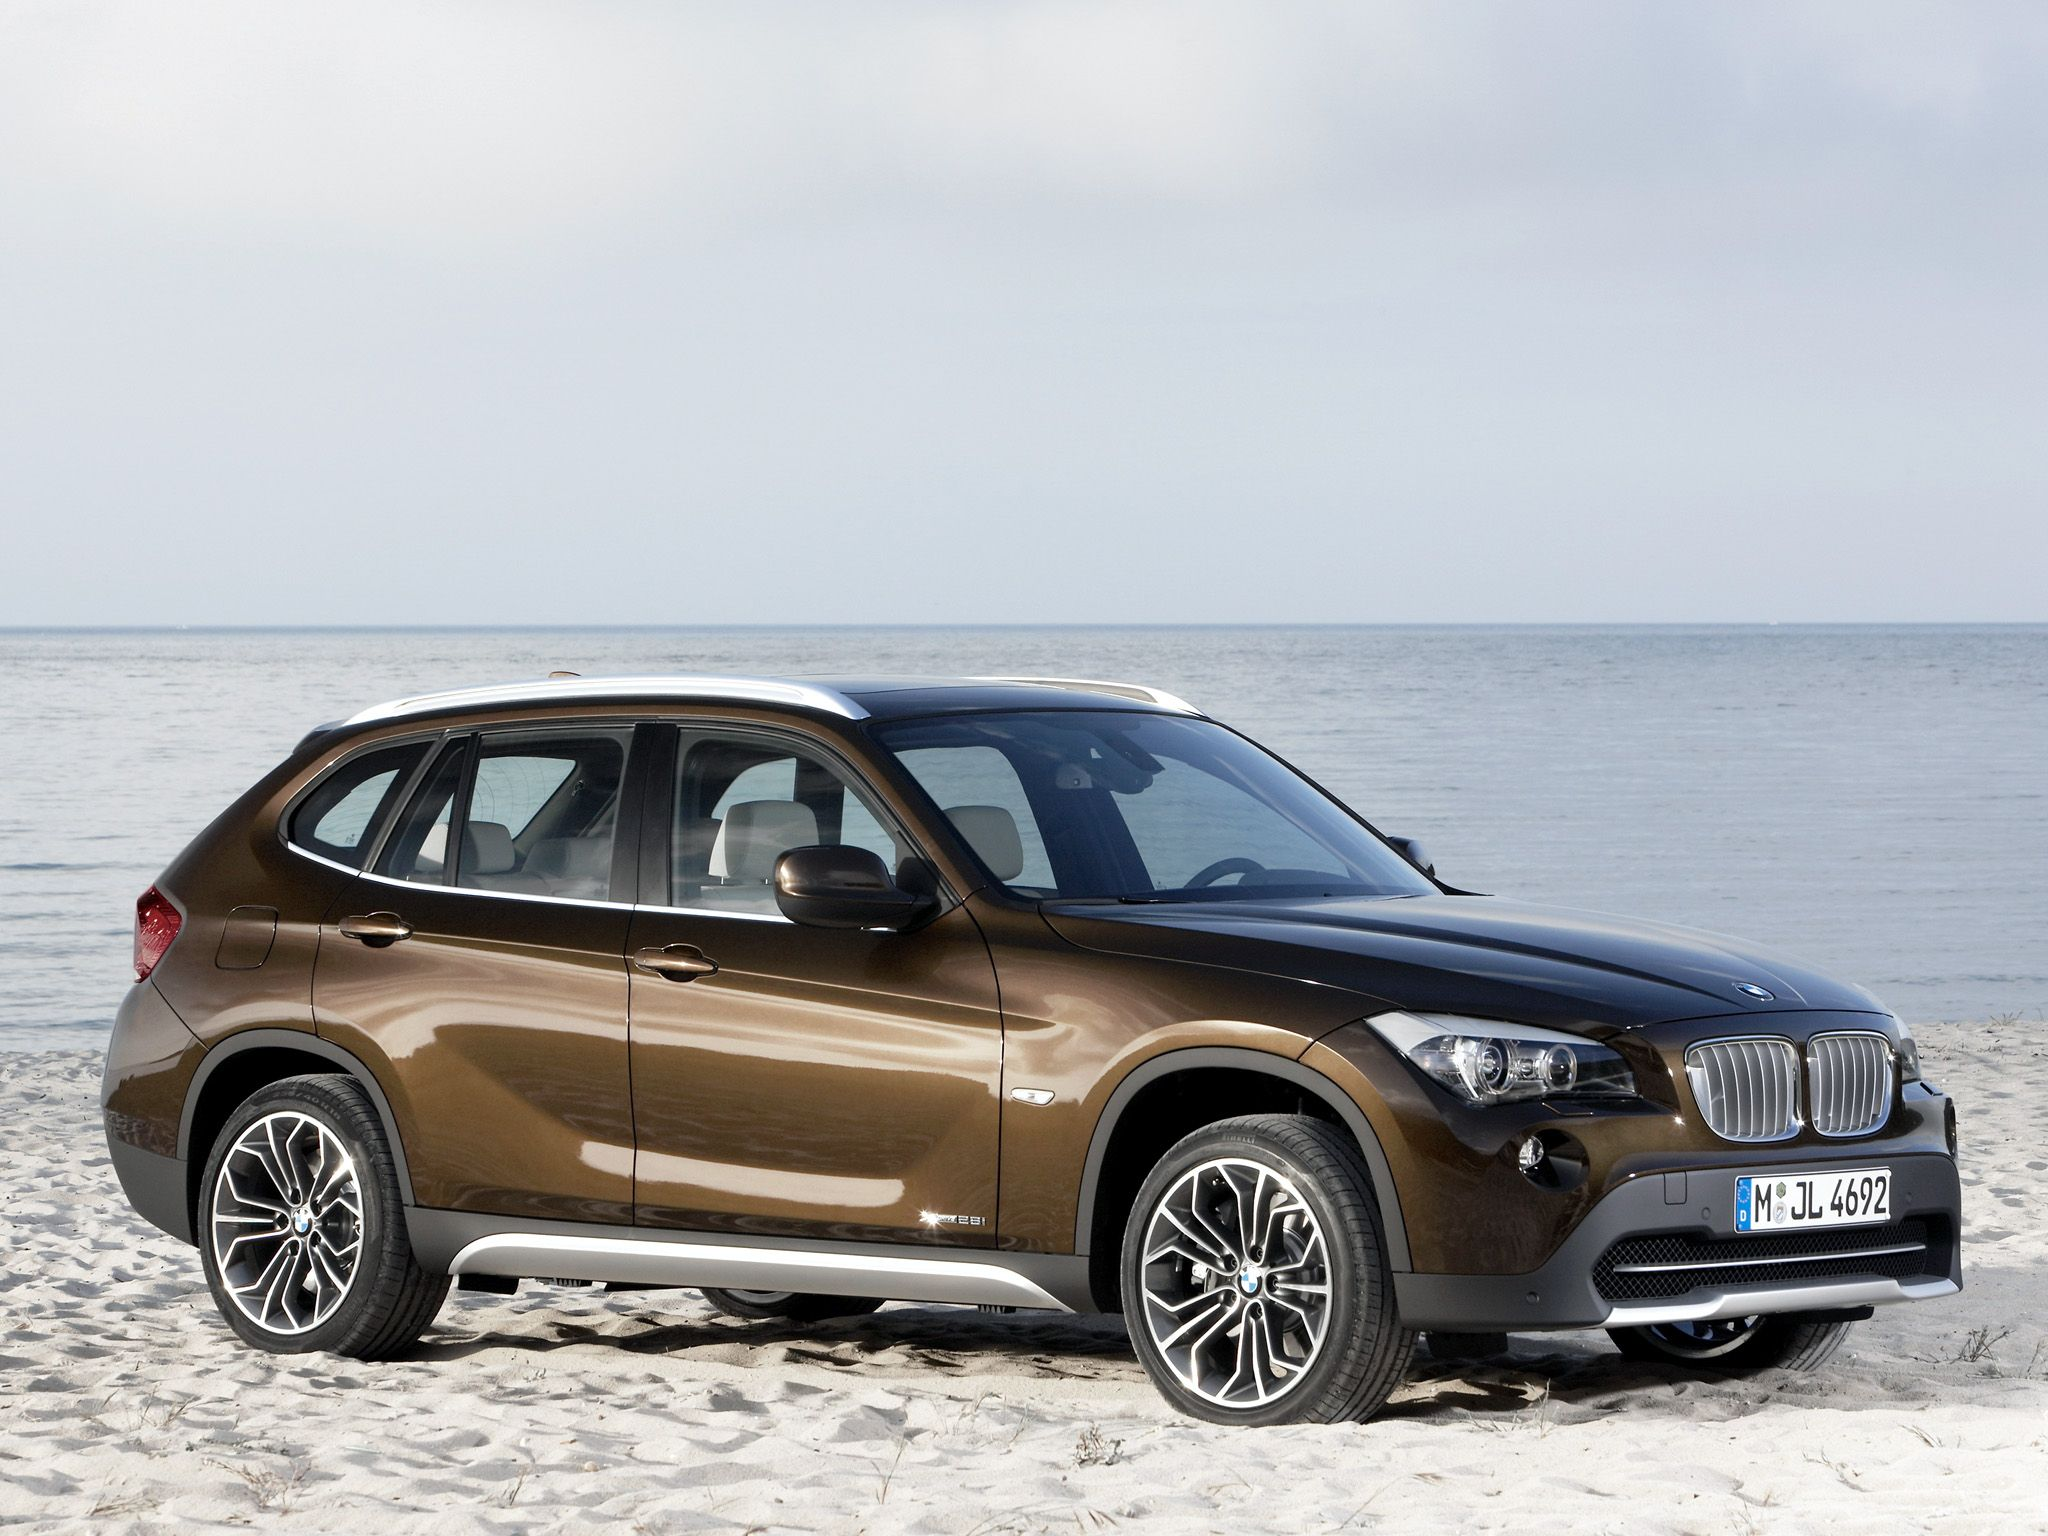 E84 bmw x1 this brown color was actually one of the introduction colors quite unusual